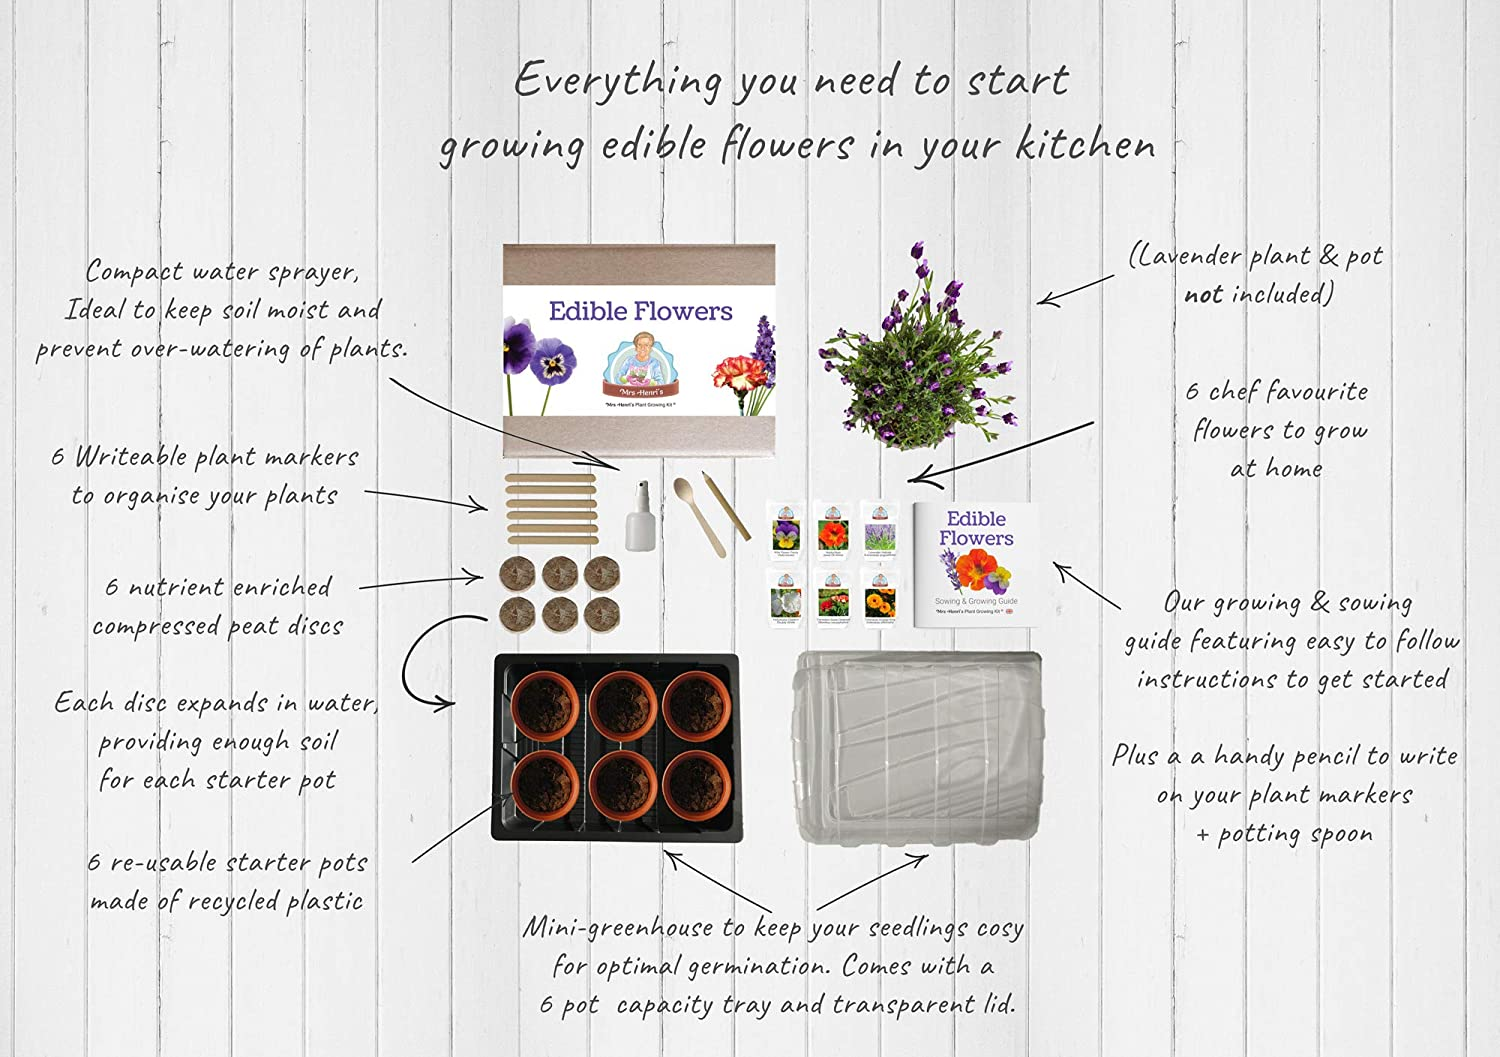 Mrs Henri/'s Plant Growing Kit The Ideal Gift for The Foodie who Enjoys Cooking and Wants Their own Edible Flower Garden. Grow 6 Edible Flowers from Seed Edible Flowers